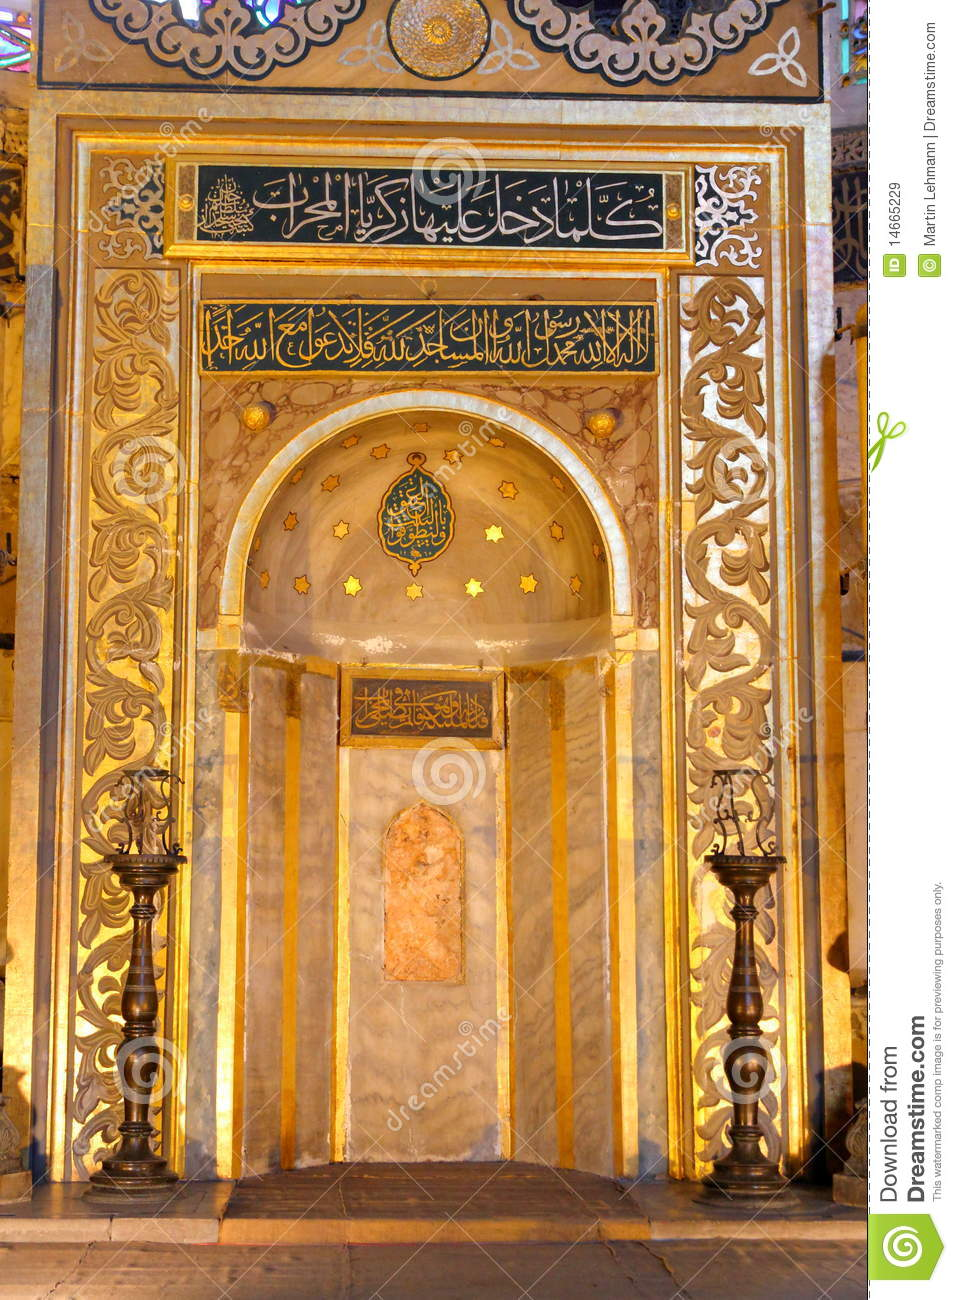 mihrab-hagia-sofia-14665229 Plans For Martin House on plans for wren houses, plans for guest houses, plans for butterfly houses, plans for bat houses, plans for duck houses, plans for bird houses, plans for bamboo houses, plans for little houses,